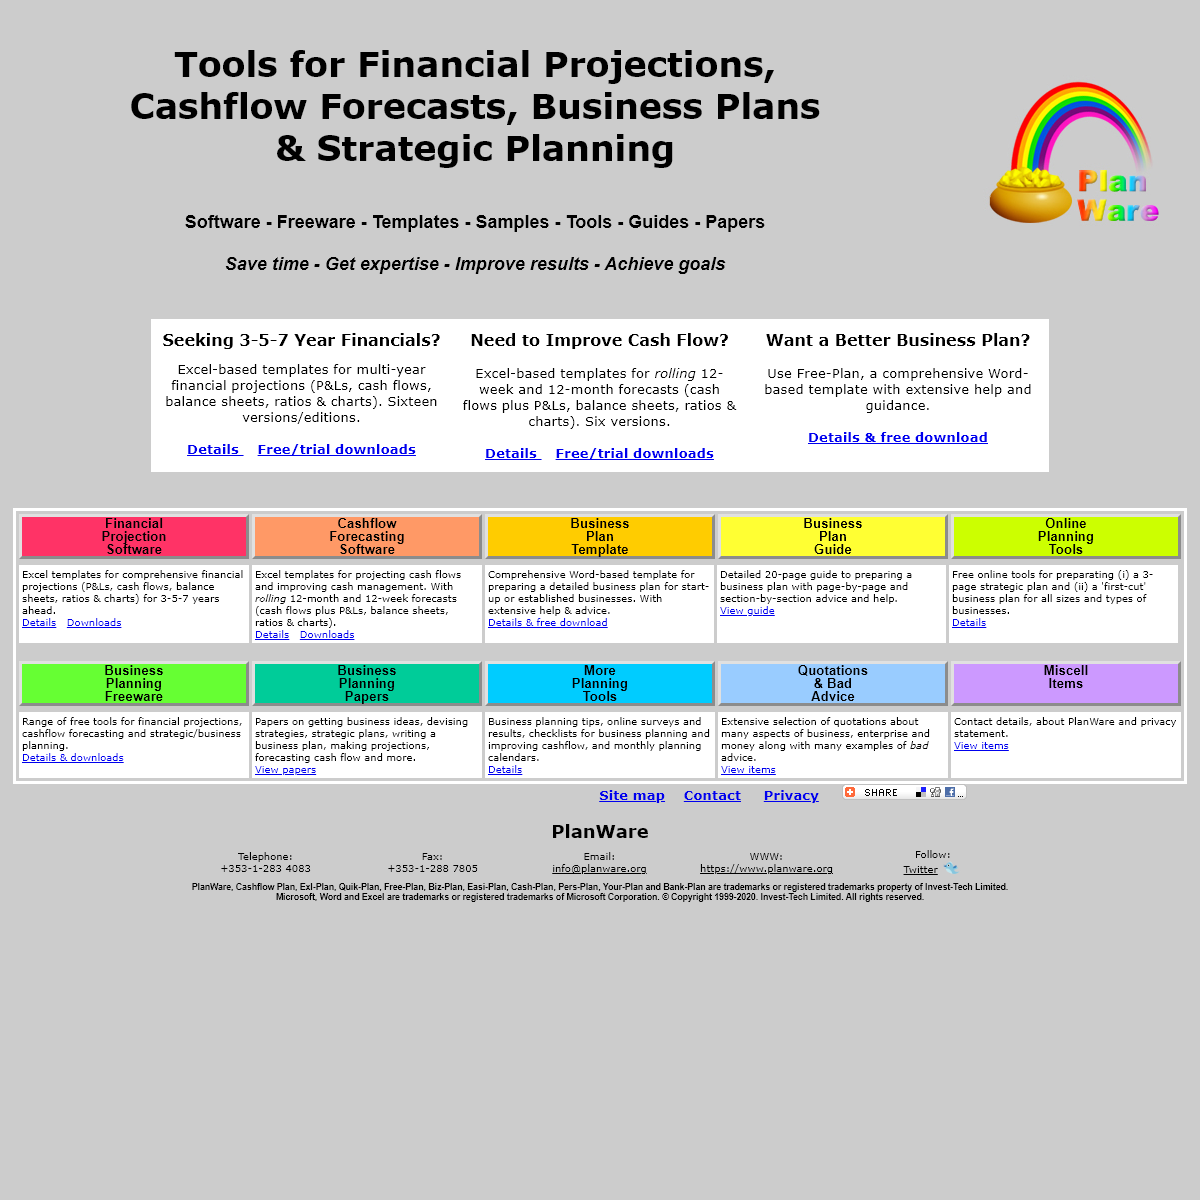 Free Business Plan Software, Financial Projections, Cash Flow Planning & Business Planners